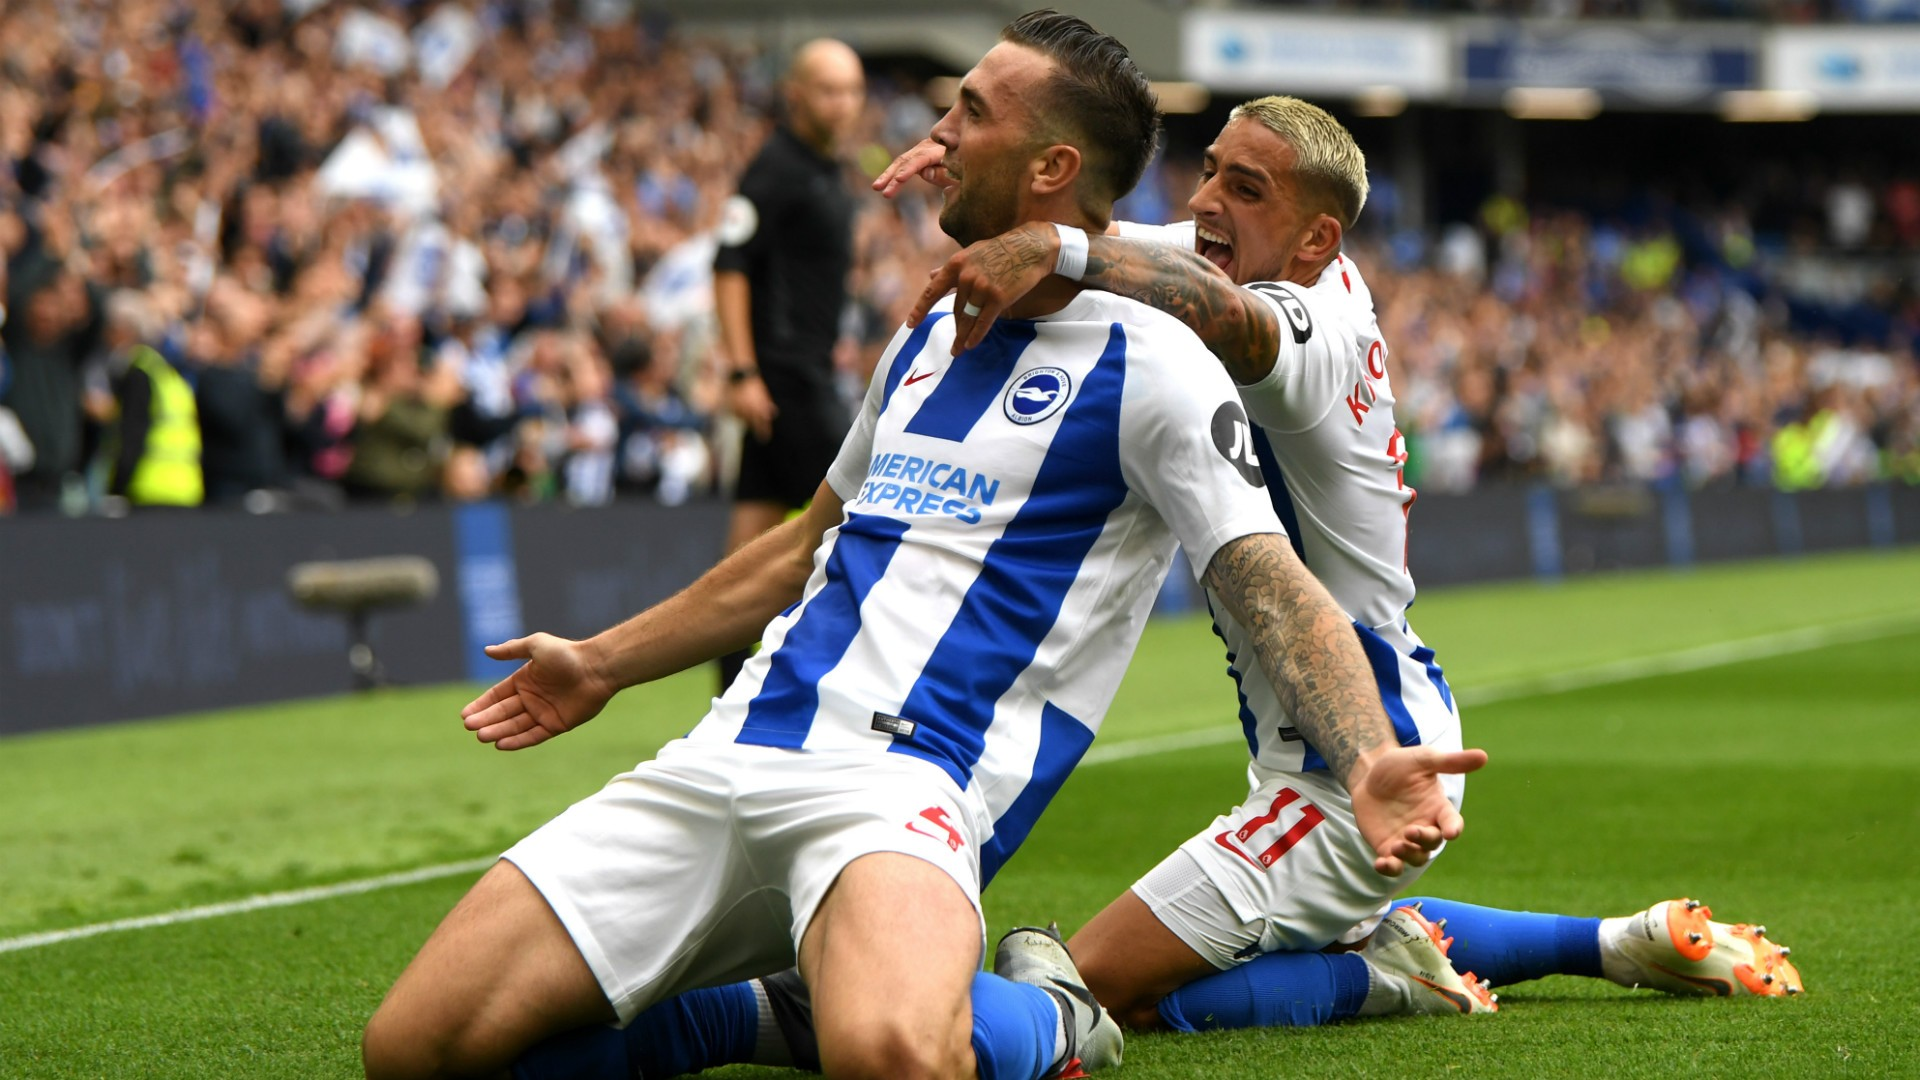 BPL (2018-2019) Report: Brighton and Hove Albion 3 Manchester United 2 - Murray lifts Seagulls to another win over Mourinho